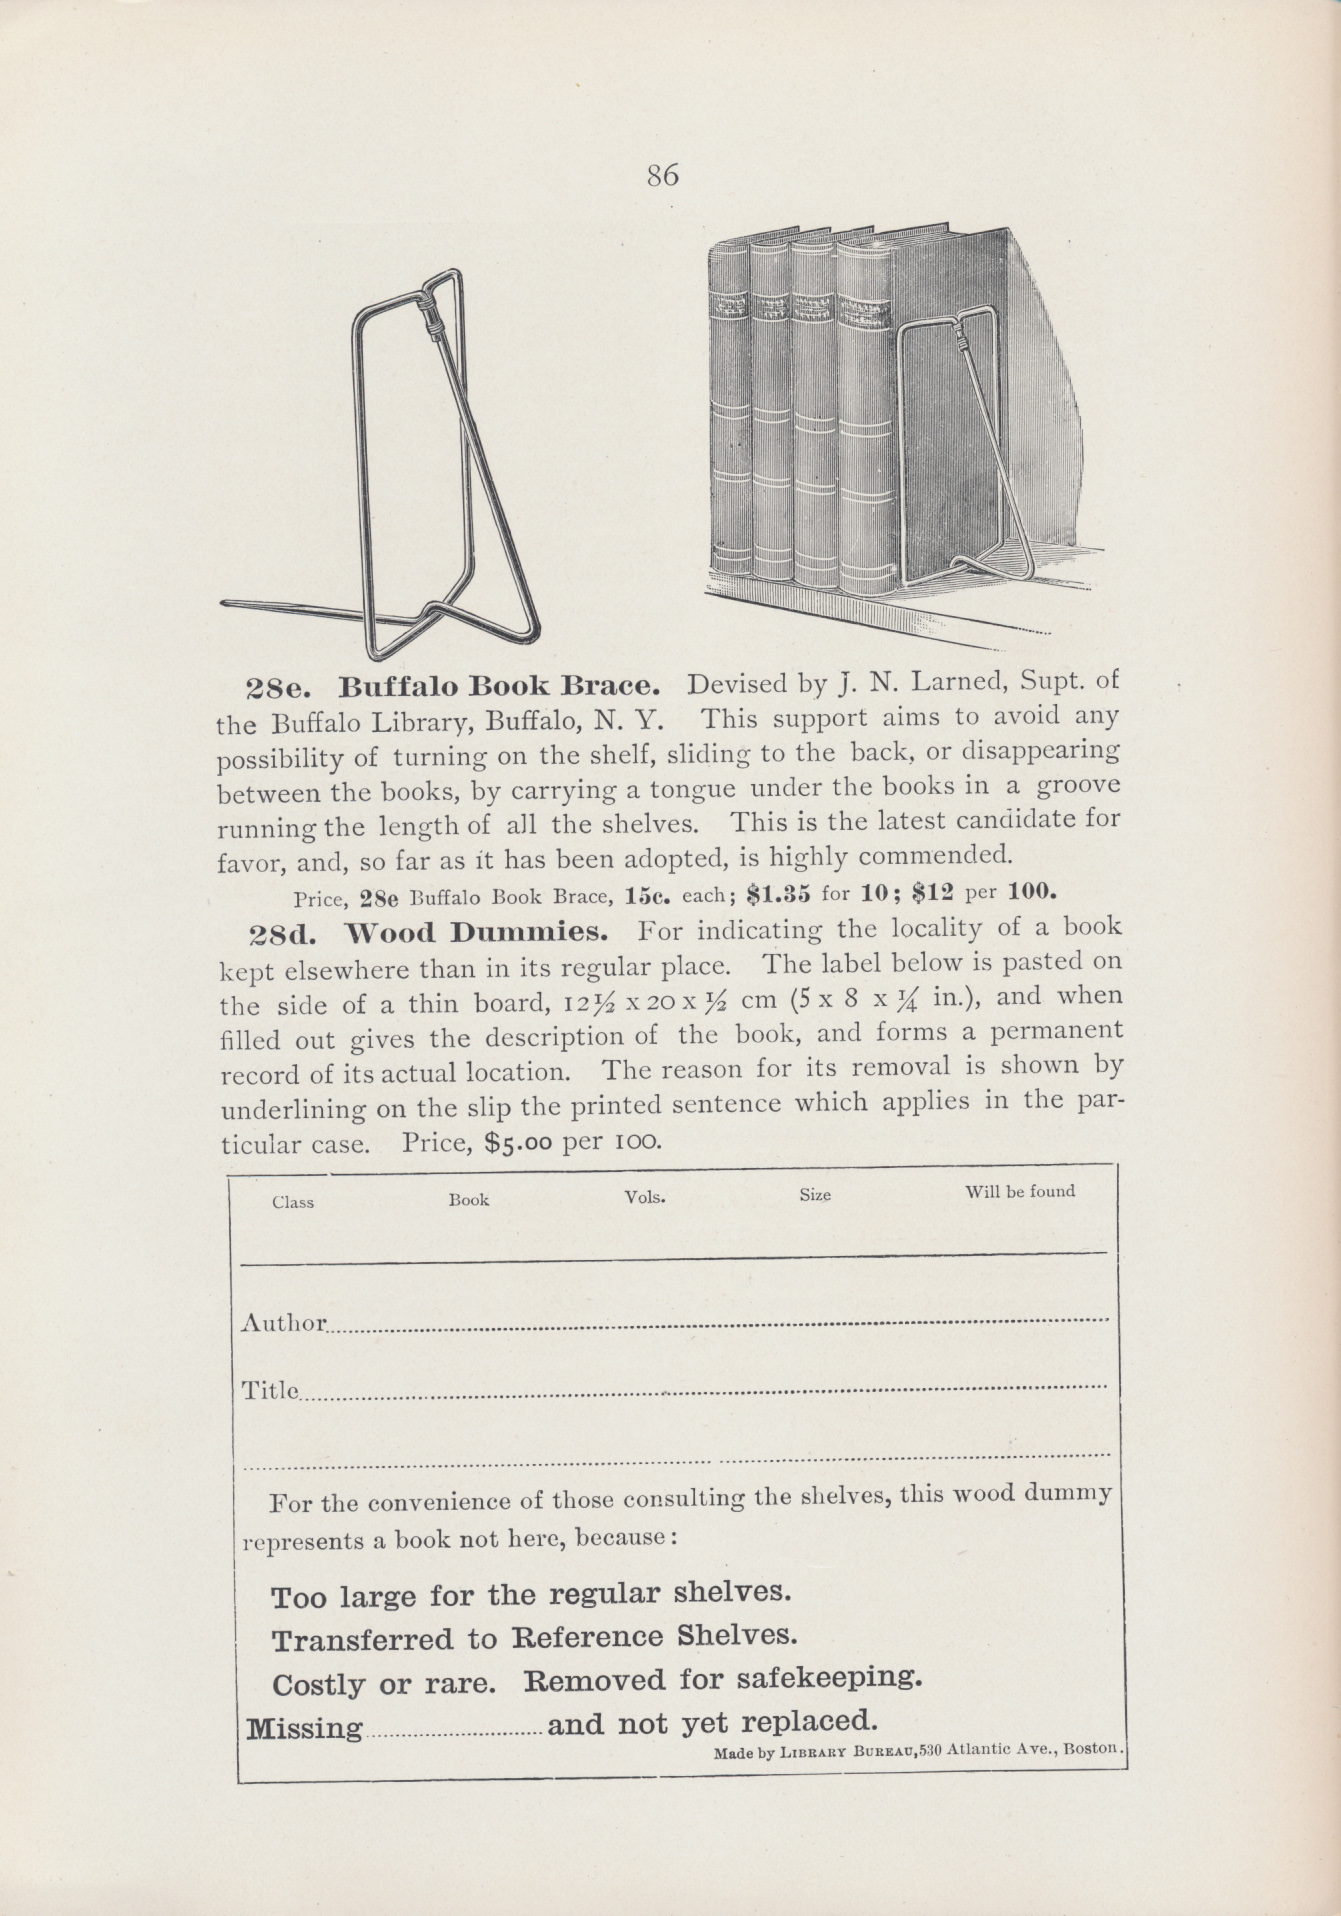 Buffalo Book Brace and label for Wood Dummies